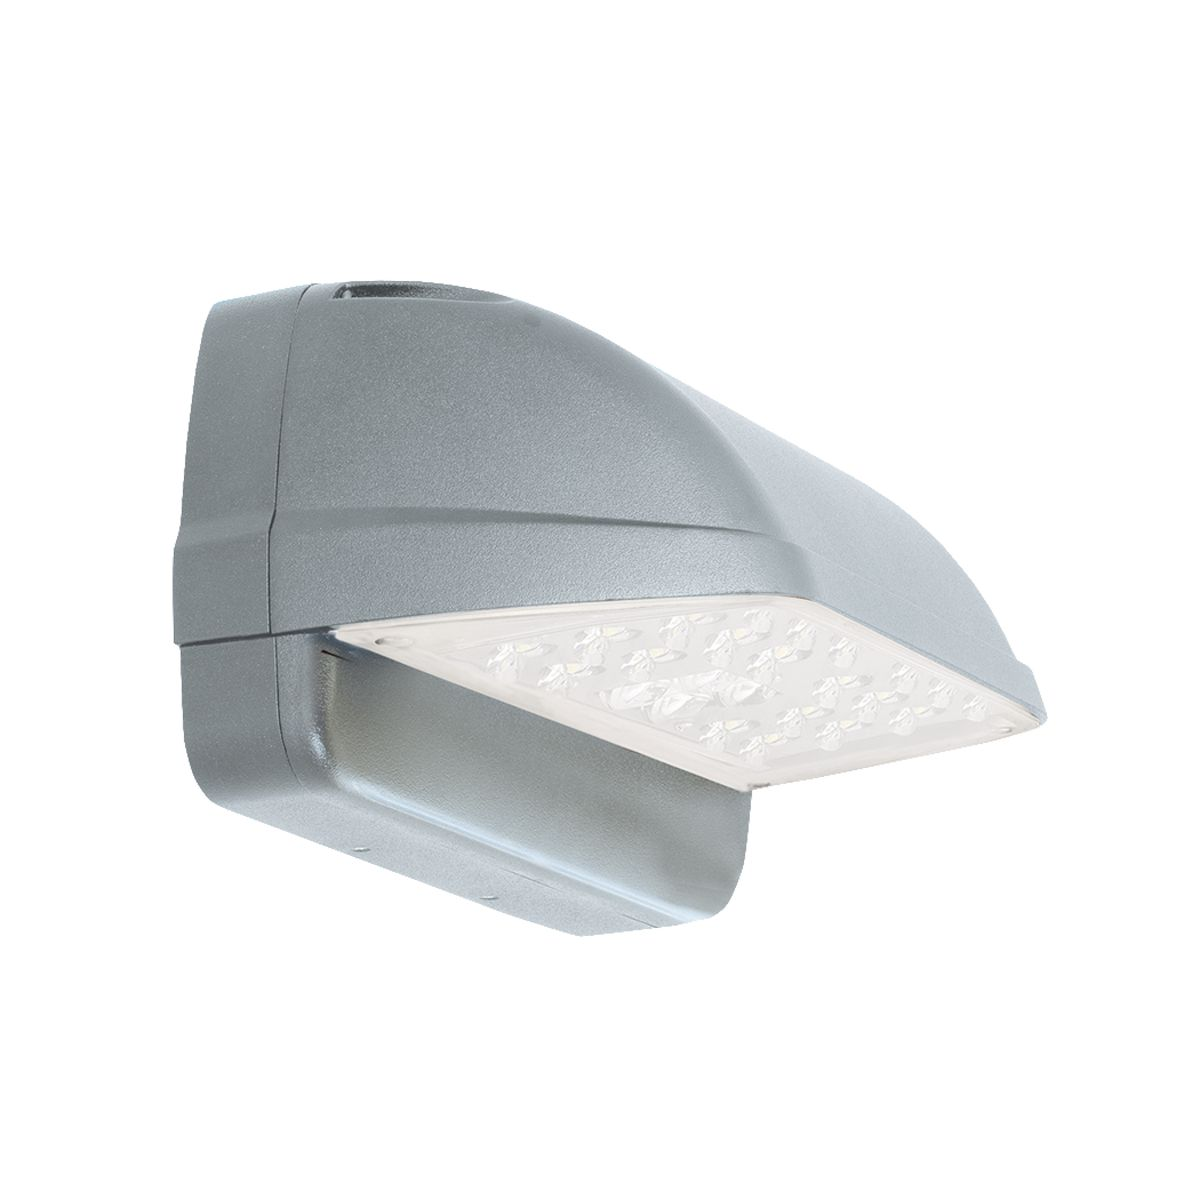 Wall Mount Outdoor Lighting Lnc2 litepak wall mount commercial outdoor lighting lighting by hubbell outdoor lighting hollnc2prodimage hollnc2prodimage hollnc2lowglaresensor hollnc2prodimagesilver hollnc2lowglare workwithnaturefo